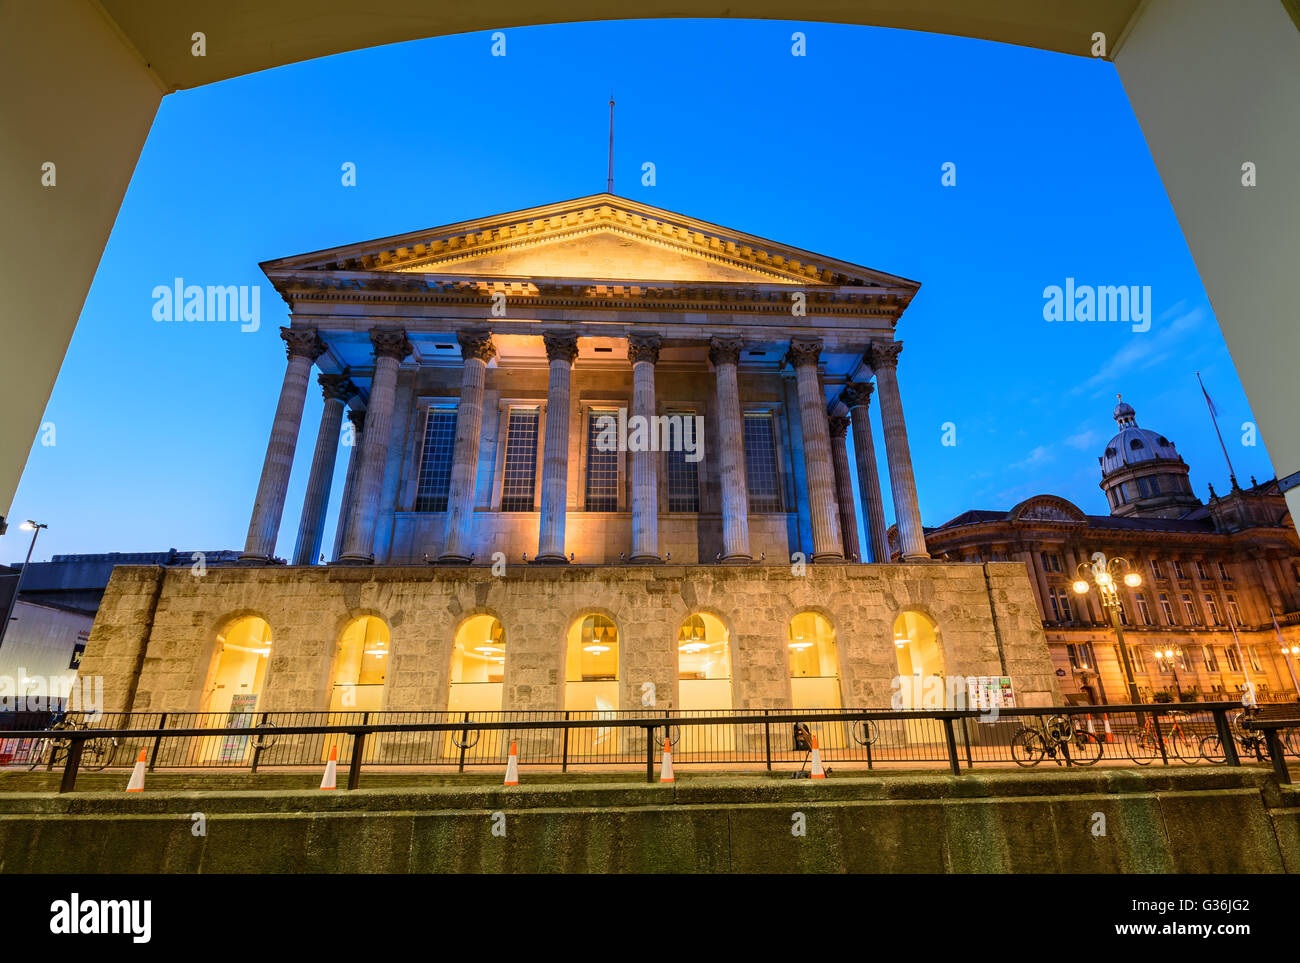 Birmingham Council house est situé au square Victoria, Birmingham, Angleterre. Photo Stock